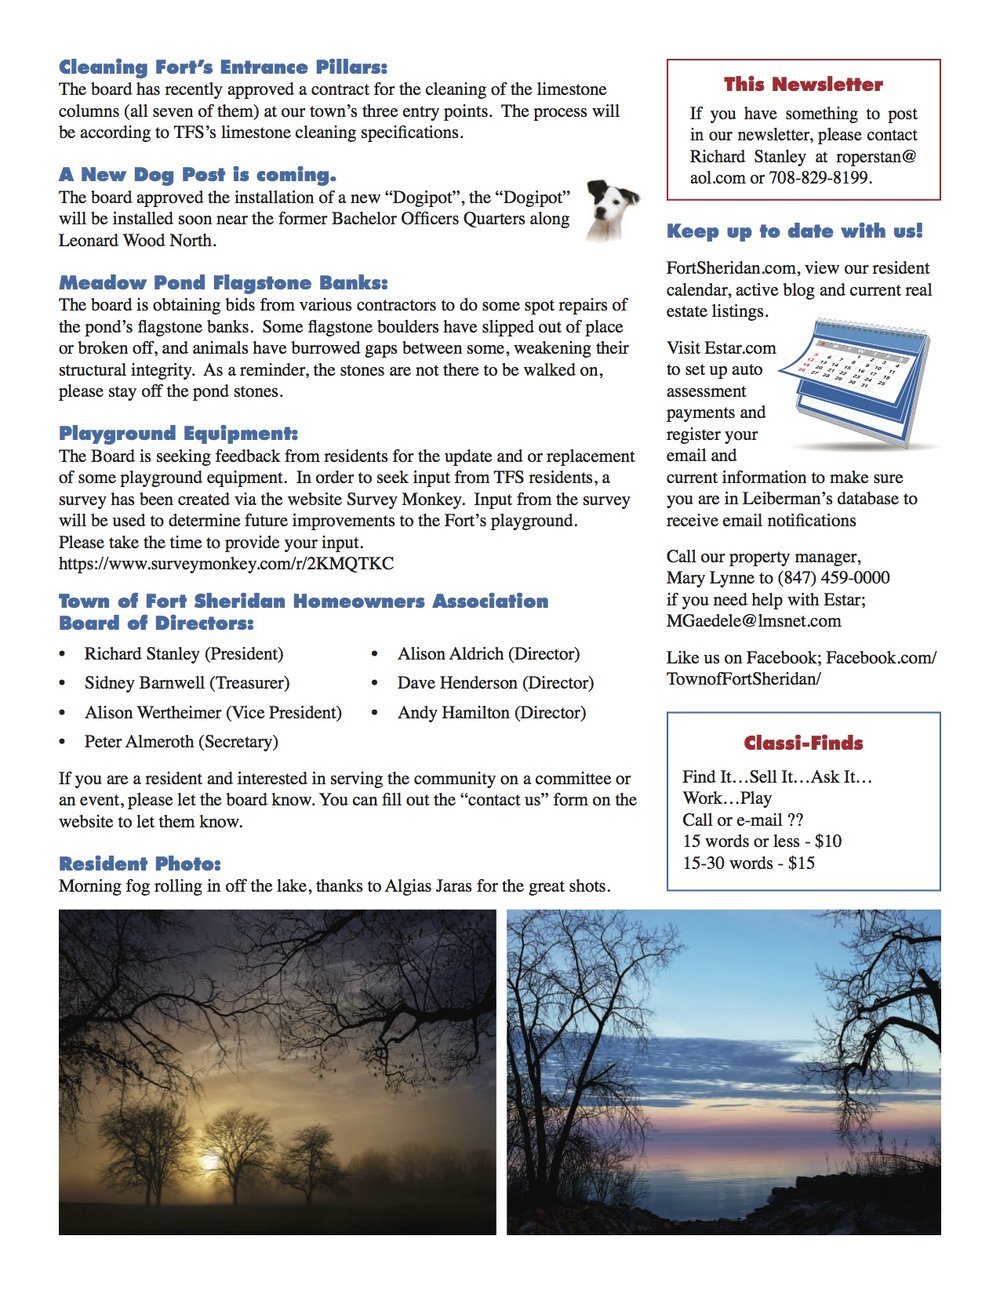 Fort Sheridan March 2017 Newsletter - Page 3